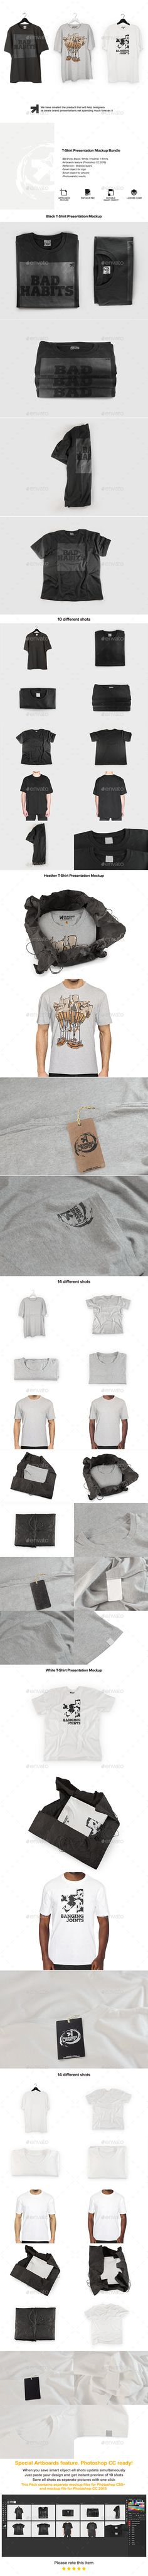 Buy T-Shirt Mockups Bundle by bangingjoints on GraphicRiver. This bundle features these packs: Black T-Shirt Presentation Mockup Heather T-Shirt Presentation Mockup White T-Shirt. T Shirt Design Template, Brand Presentation, Mockup Photoshop, Brand Style Guide, Shirt Mockup, Creating A Brand, Fashion Branding, Mockup Templates, Letter Templates